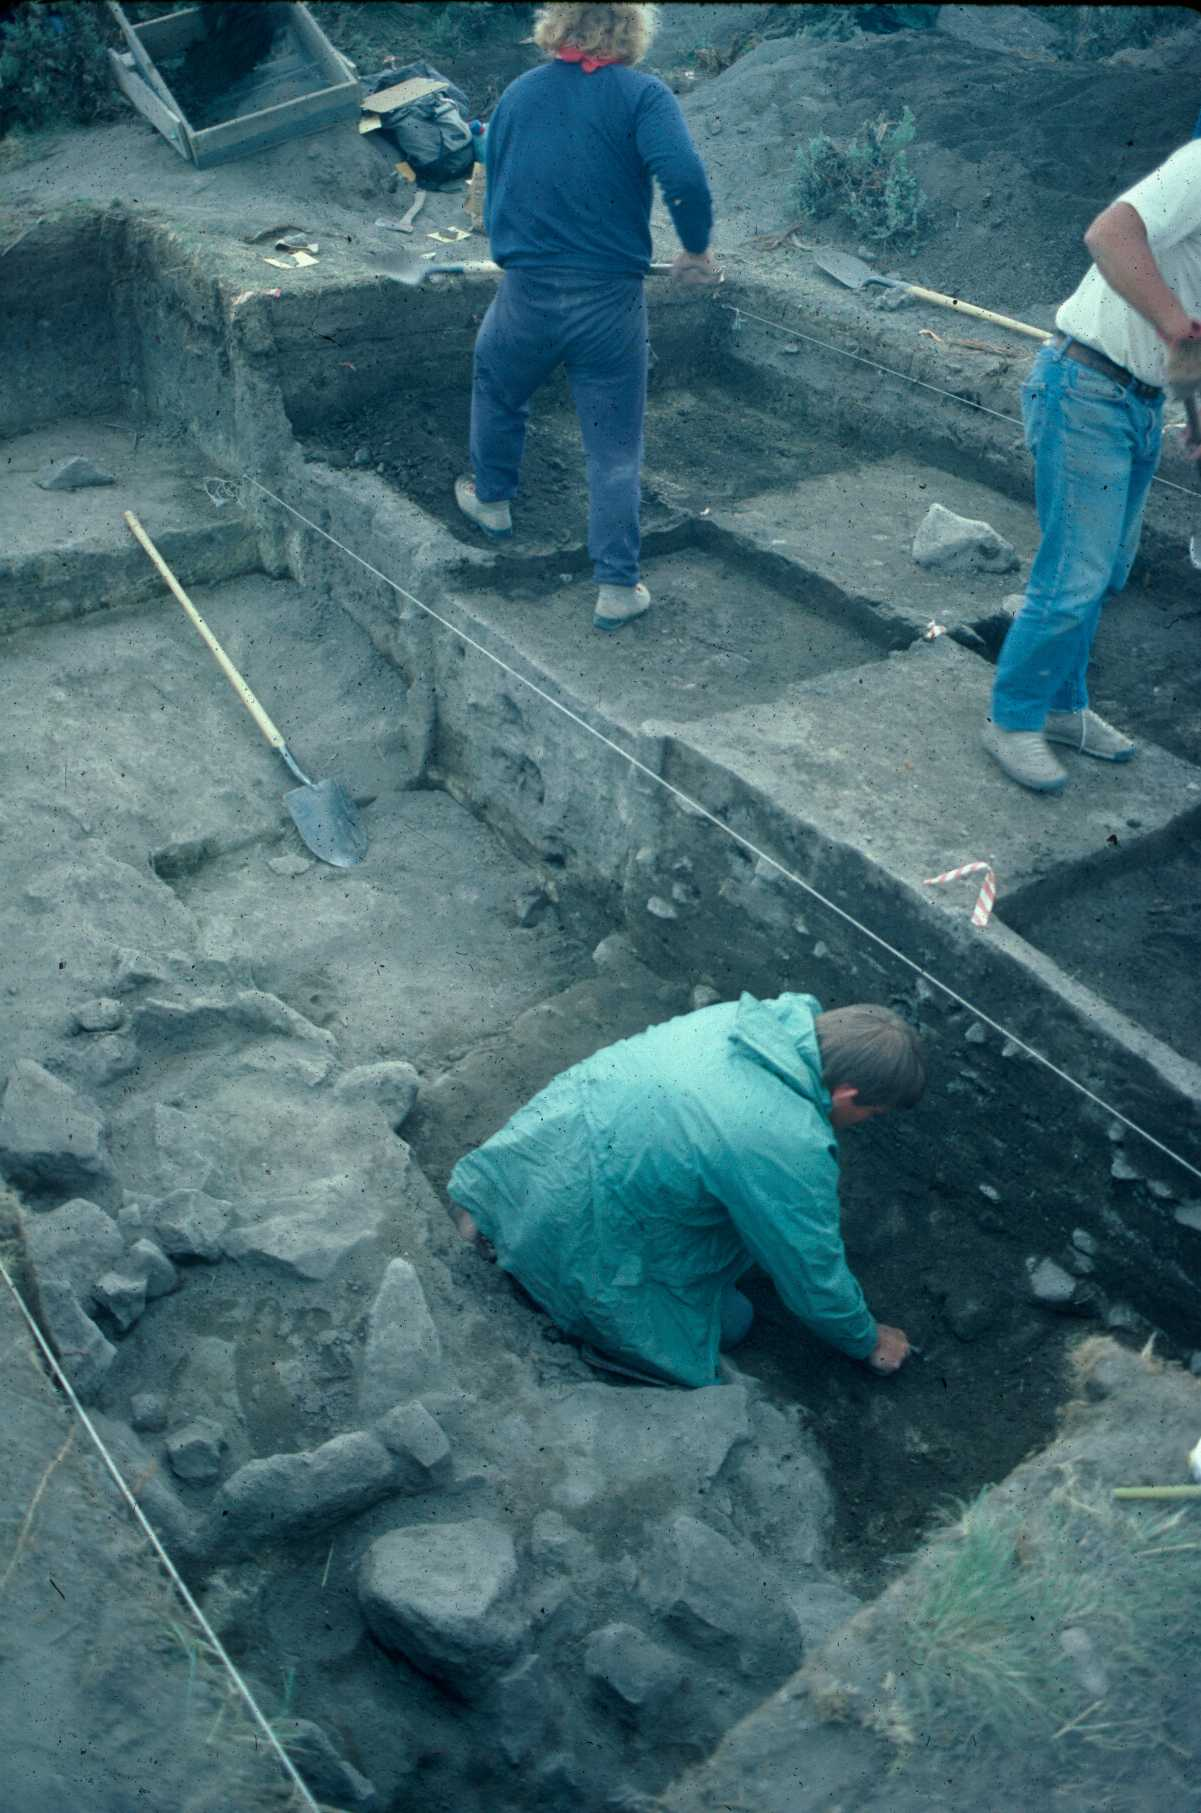 Archaeologists excavating a block of units at a site.